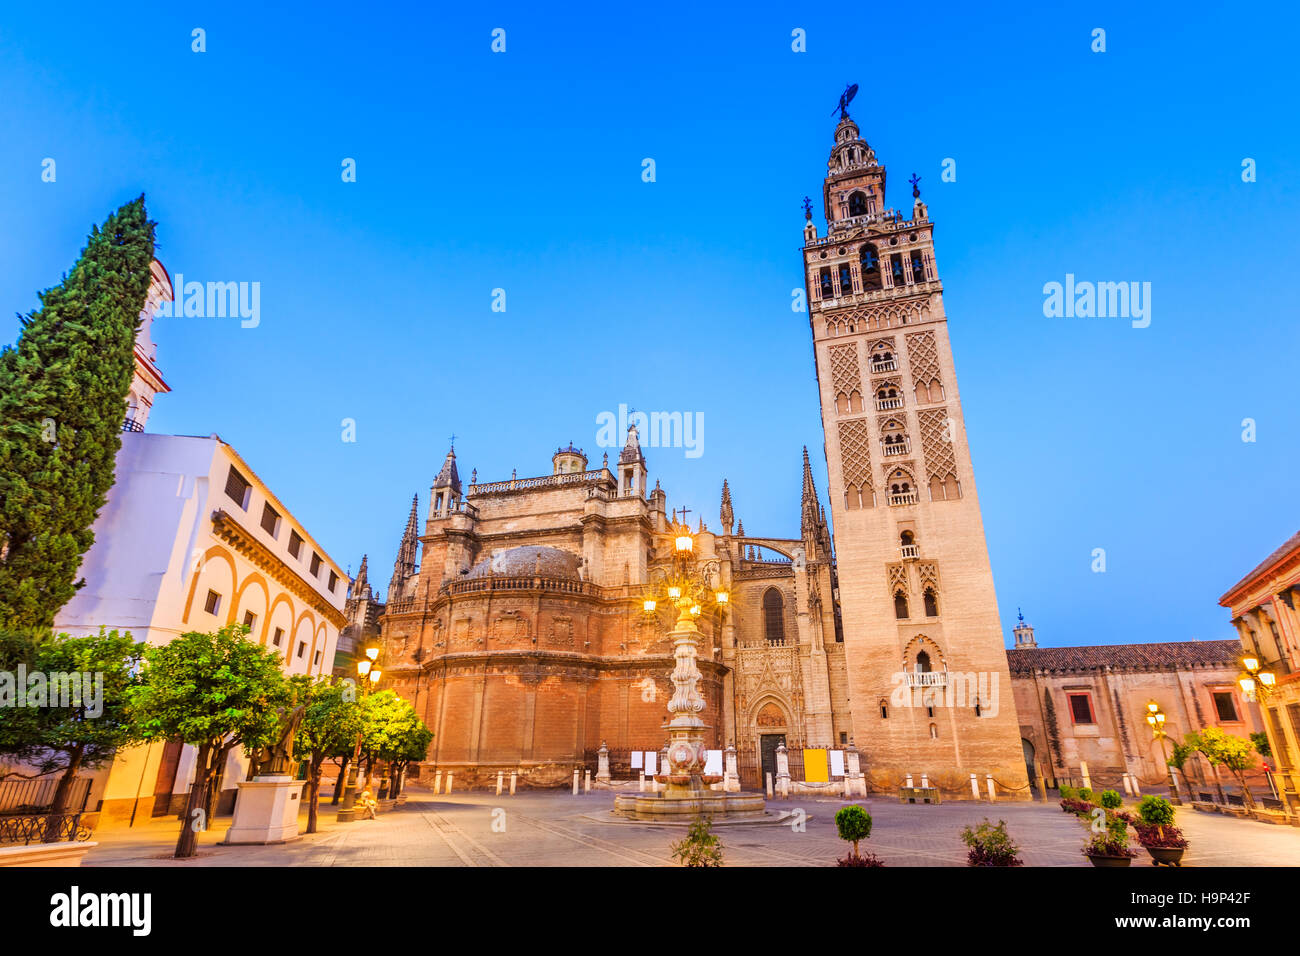 Seville, Spain. Cathedral of Saint Mary of the See. - Stock Image